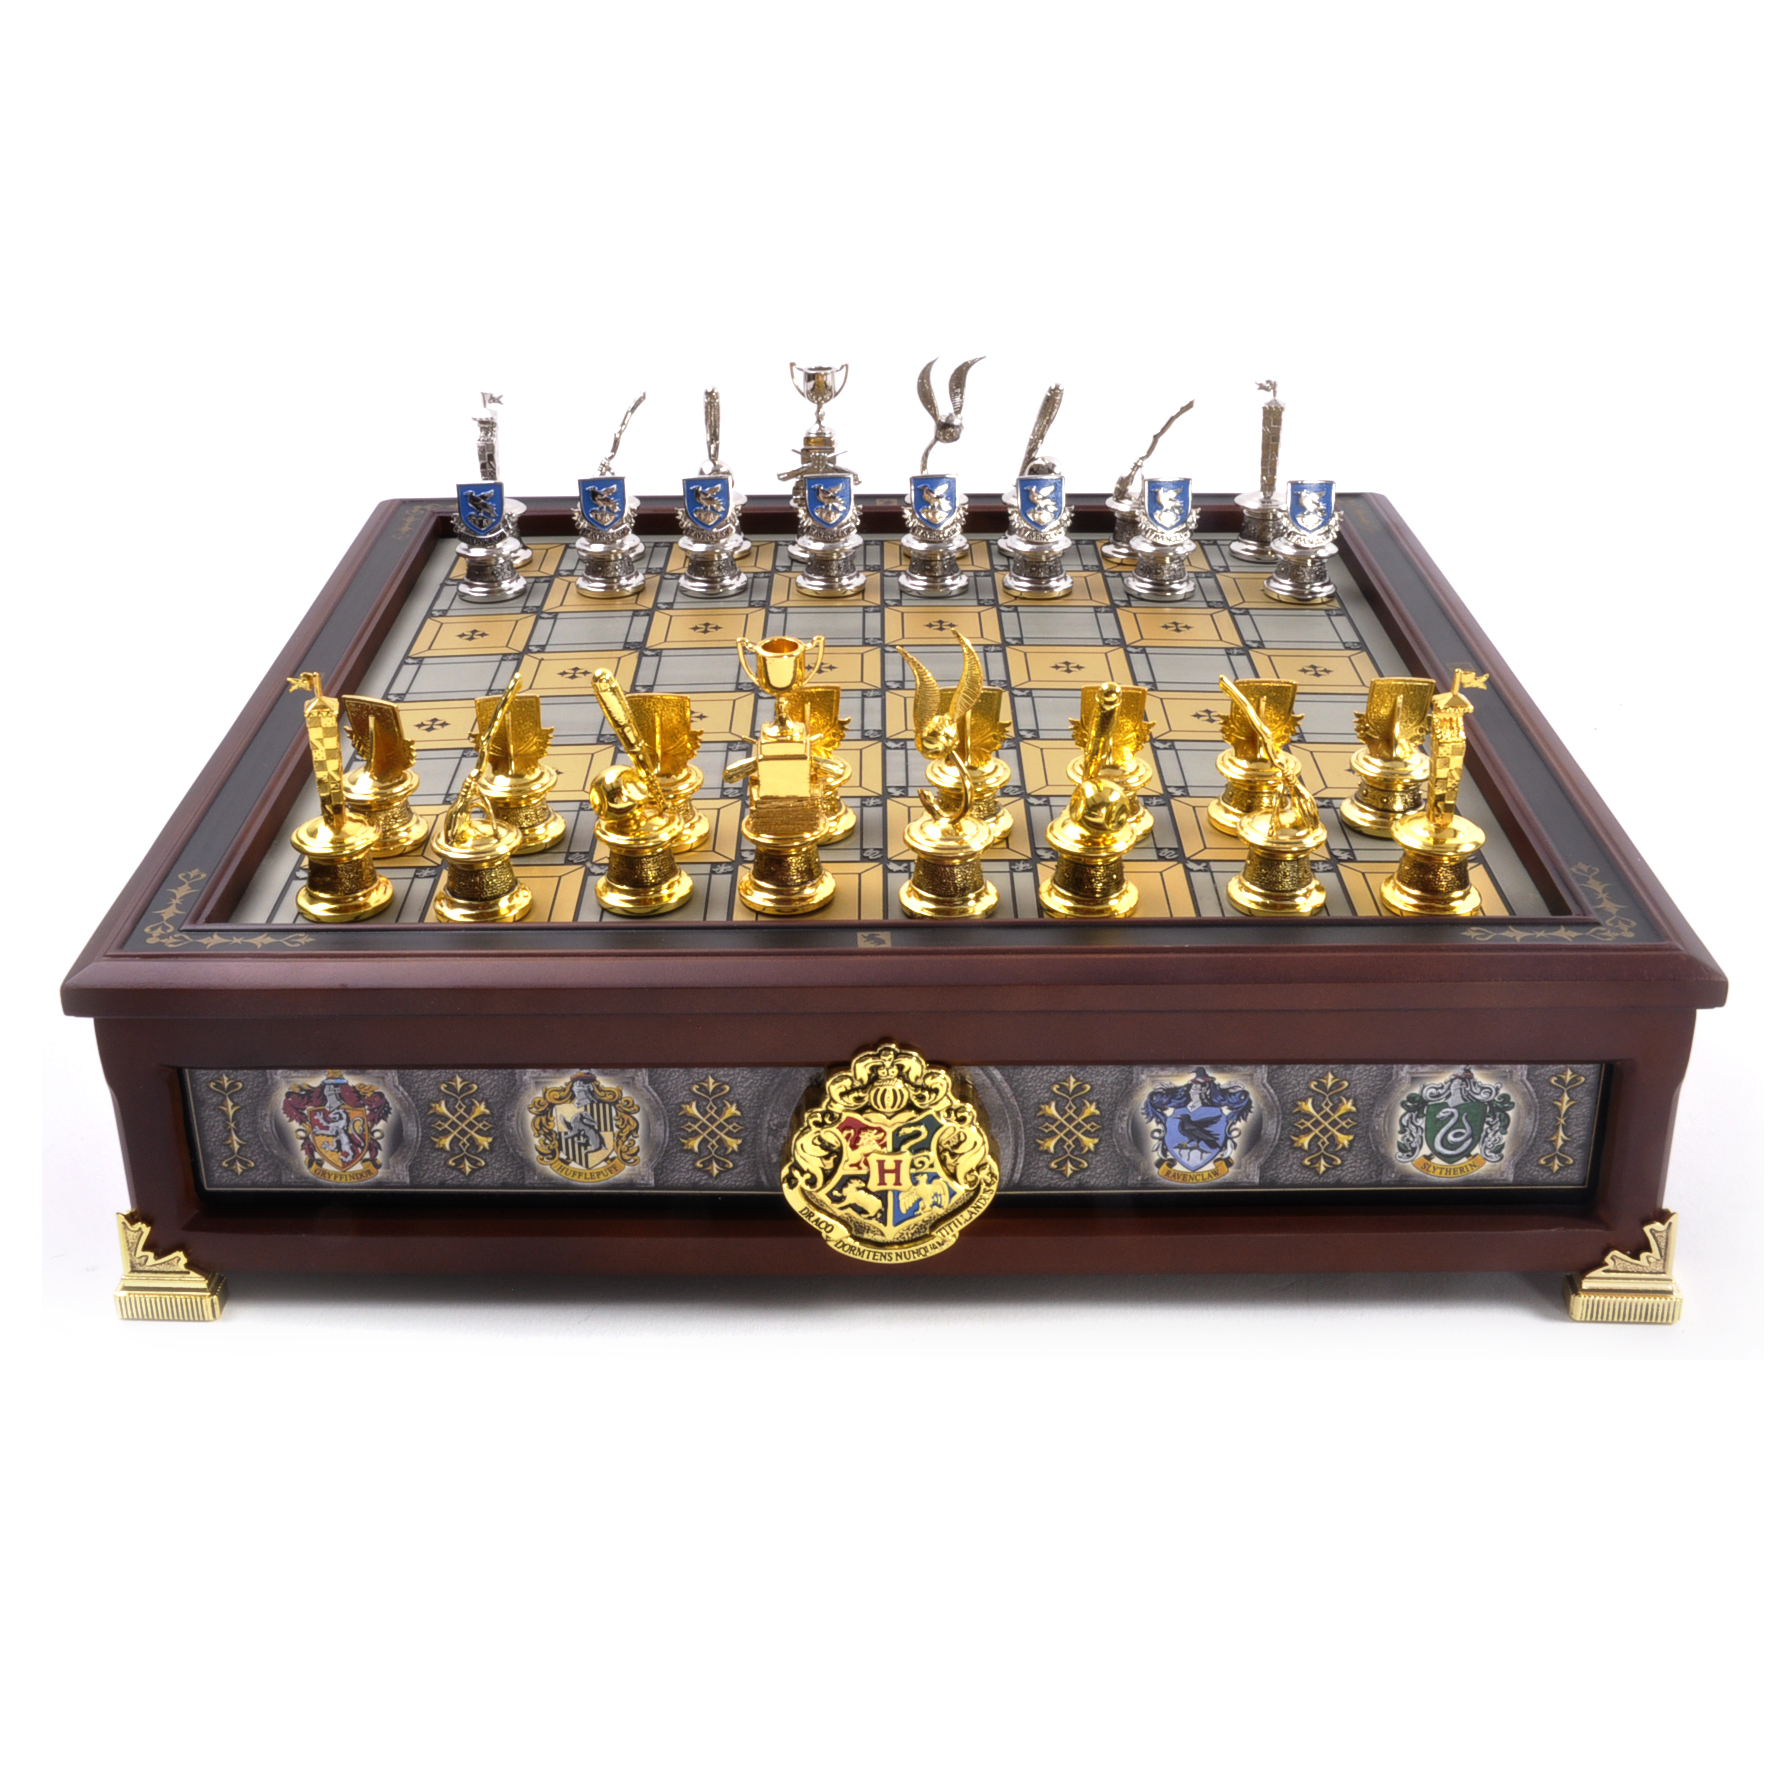 Harry potter quidditch chess set pink cat shop Where can i buy a chess game